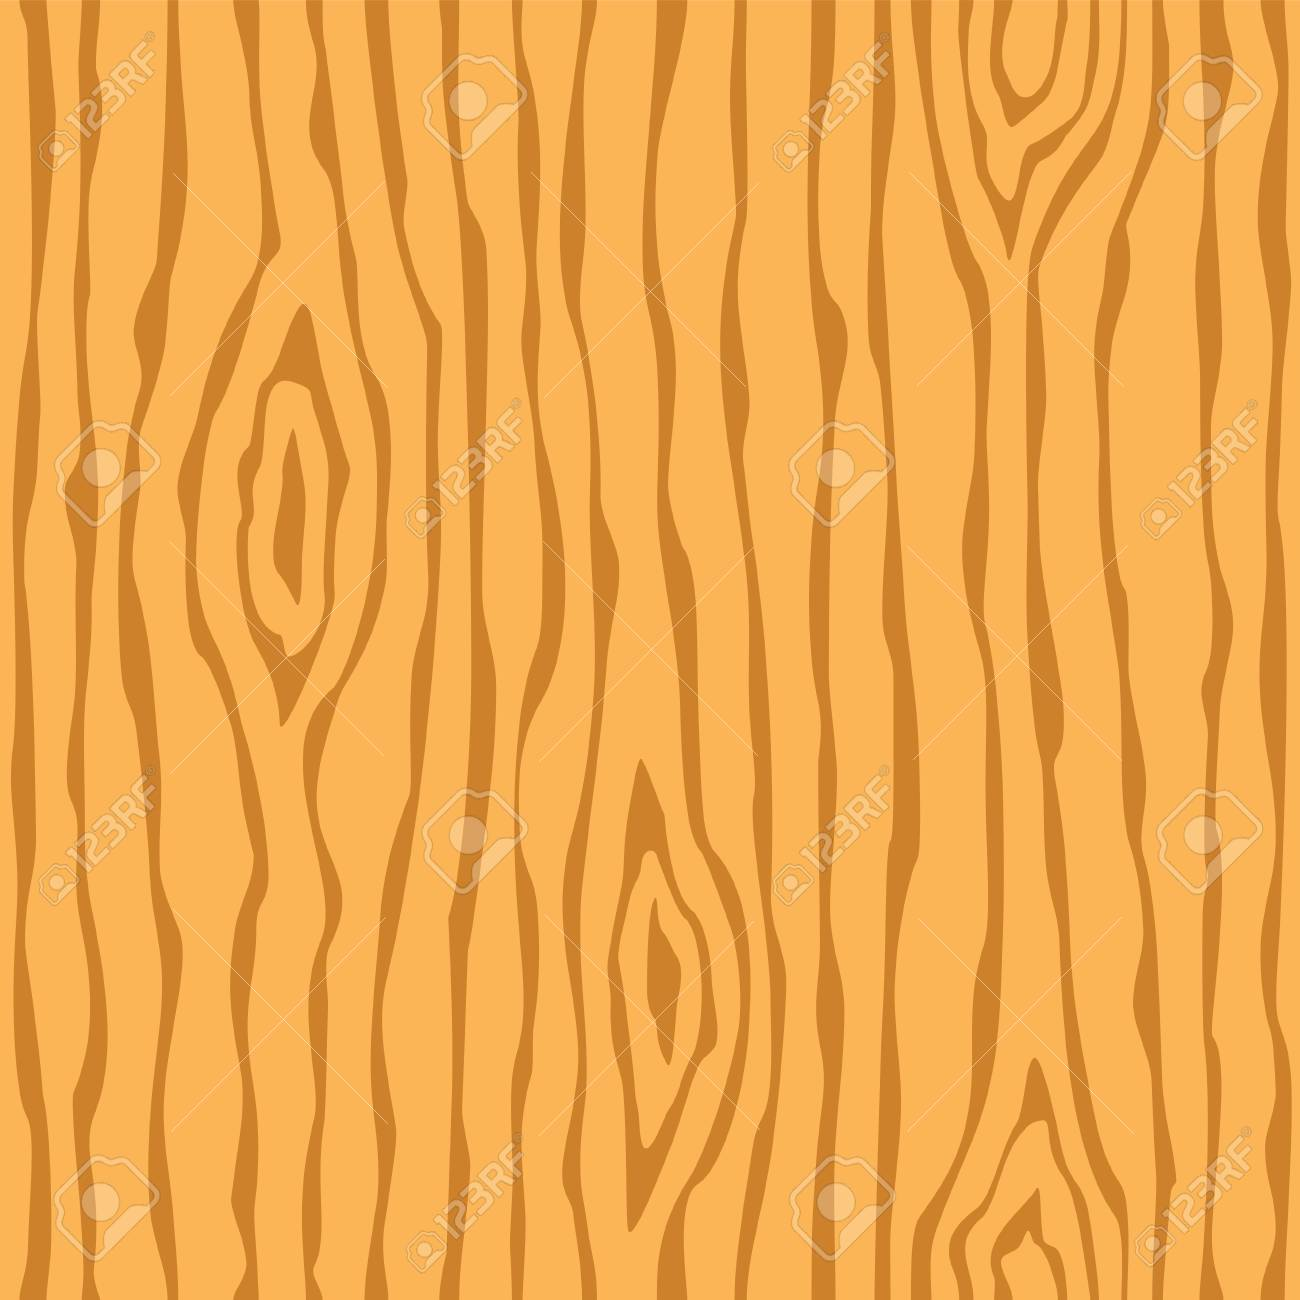 hight resolution of vector wood grain texture seamless brown wooden pattern abstract background vector illustration